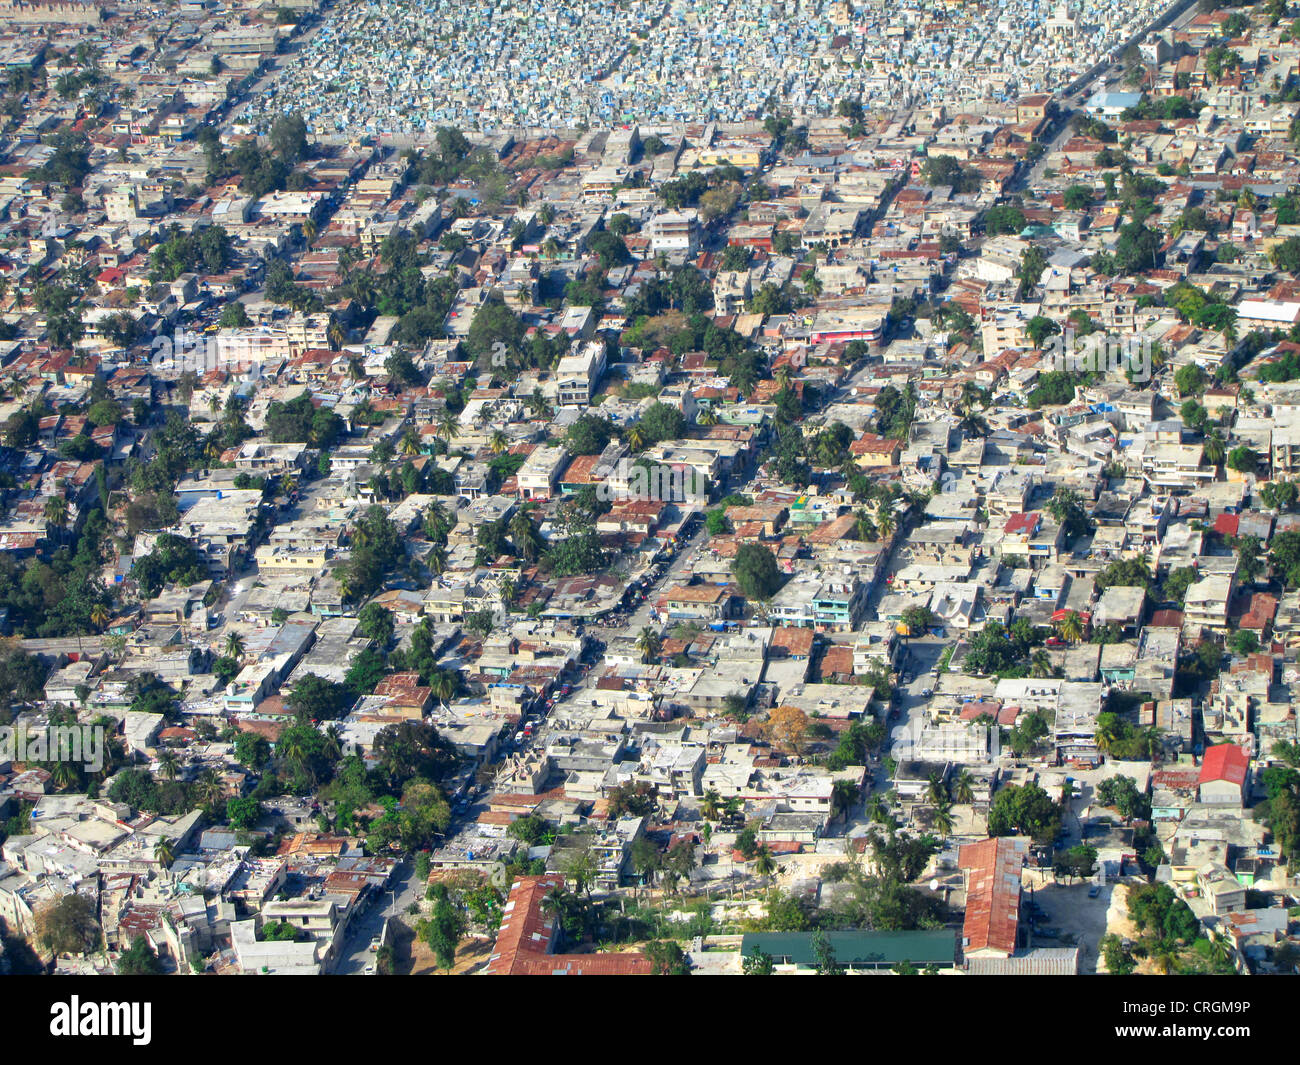 densely populated areas